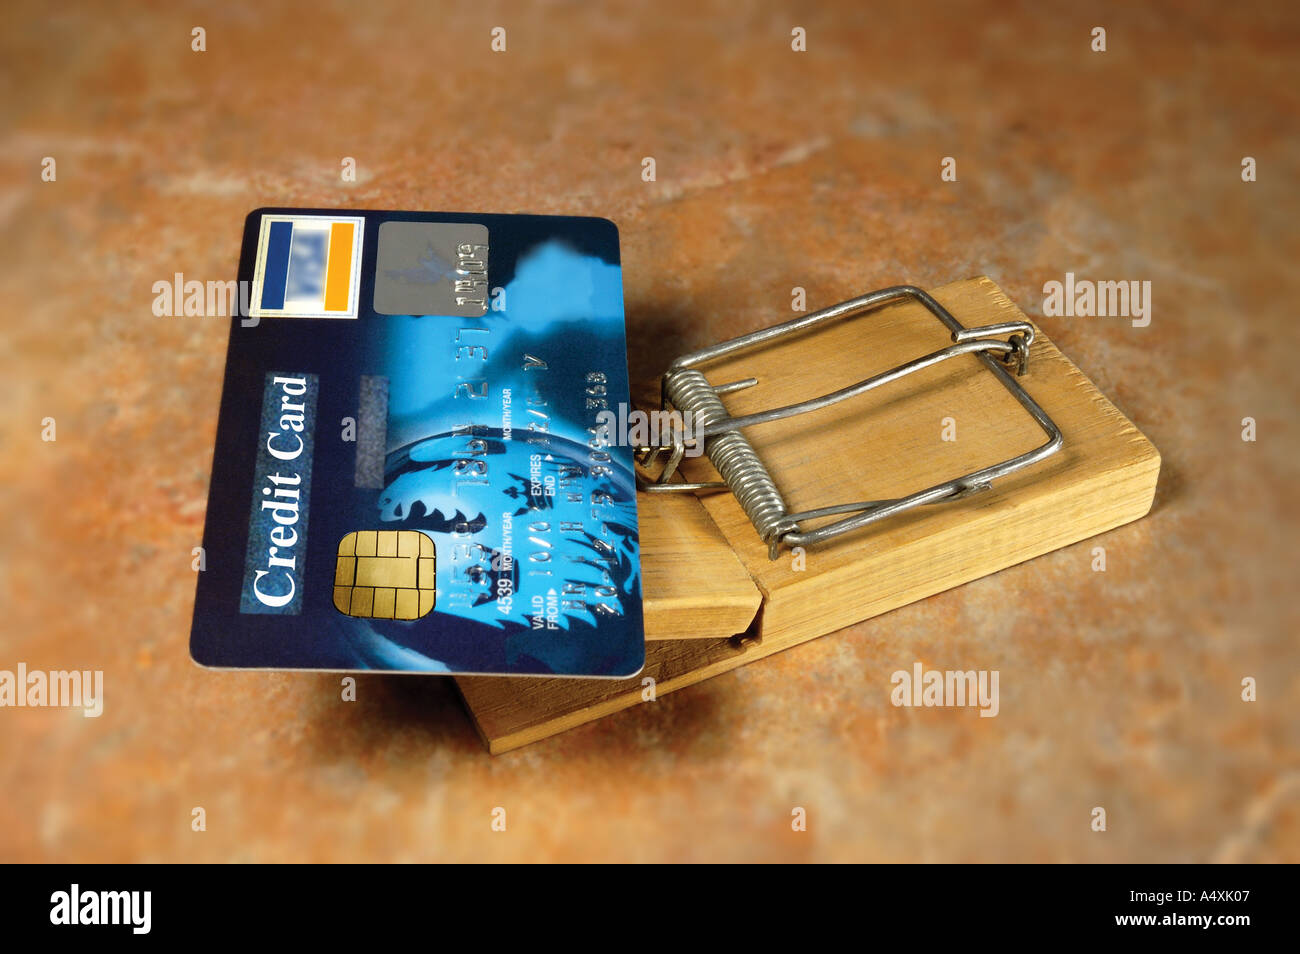 credit card on a mouse trap - Stock Image